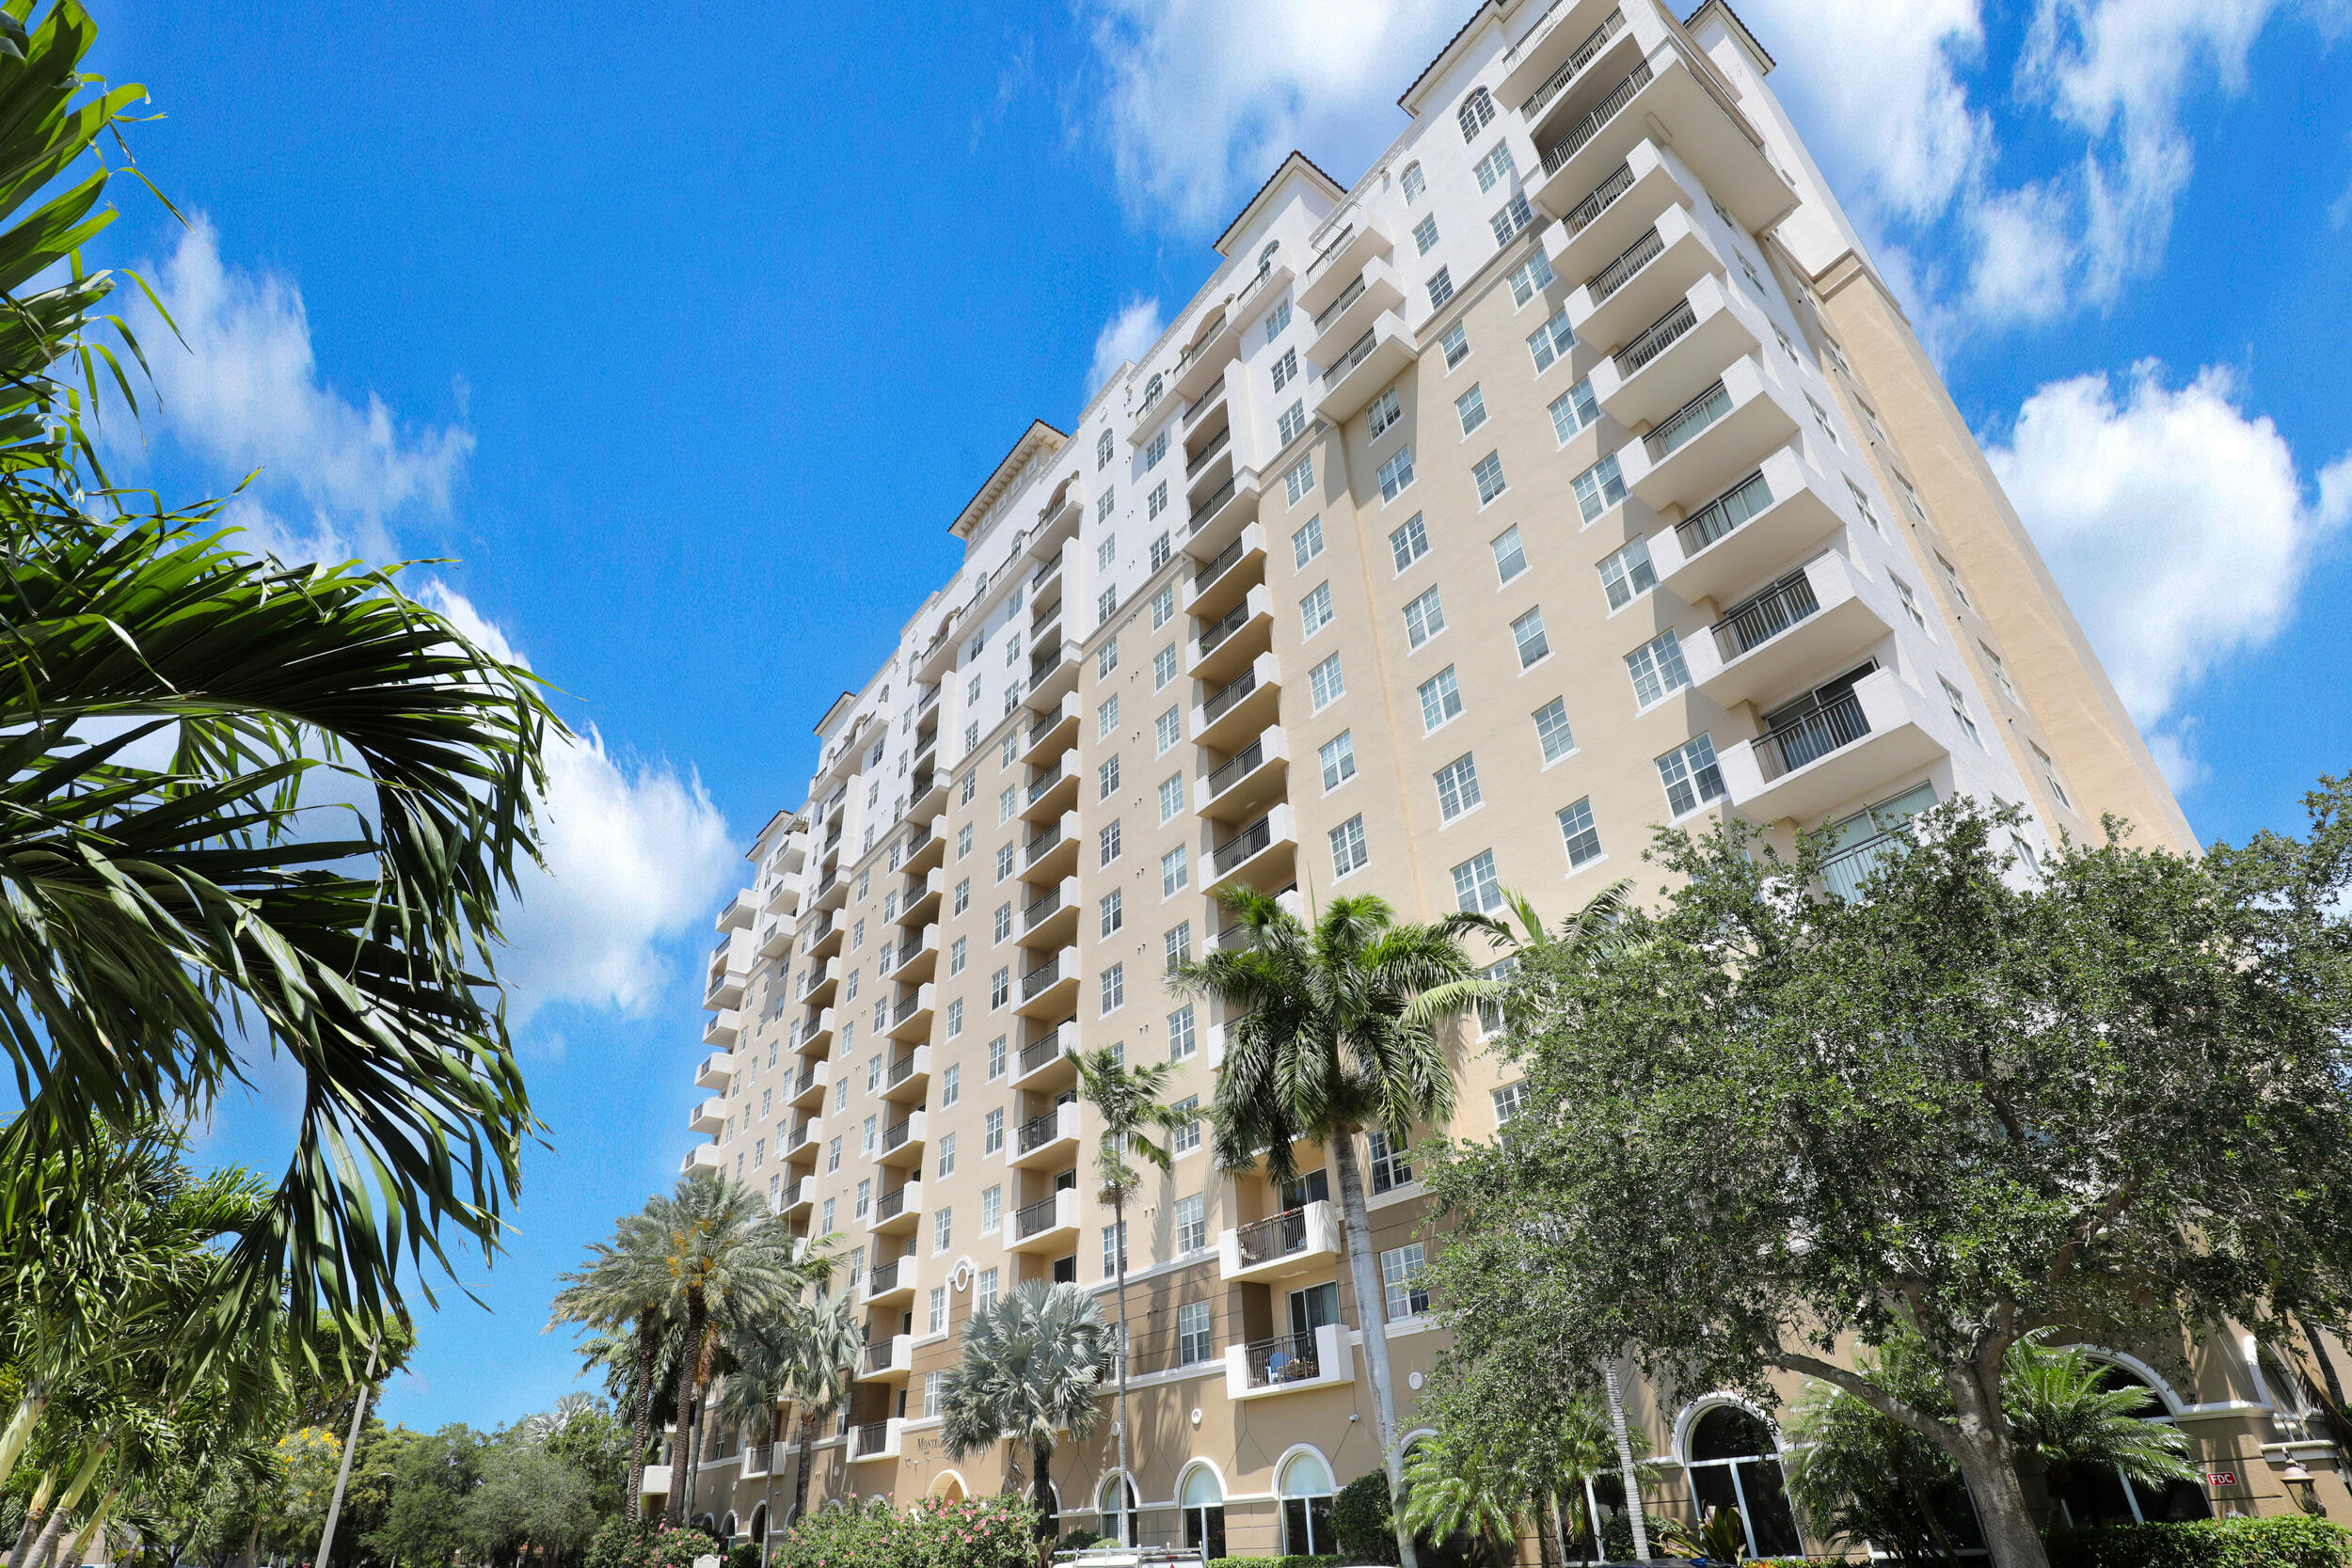 616  Clearwater Park Road 504 For Sale 10746133, FL